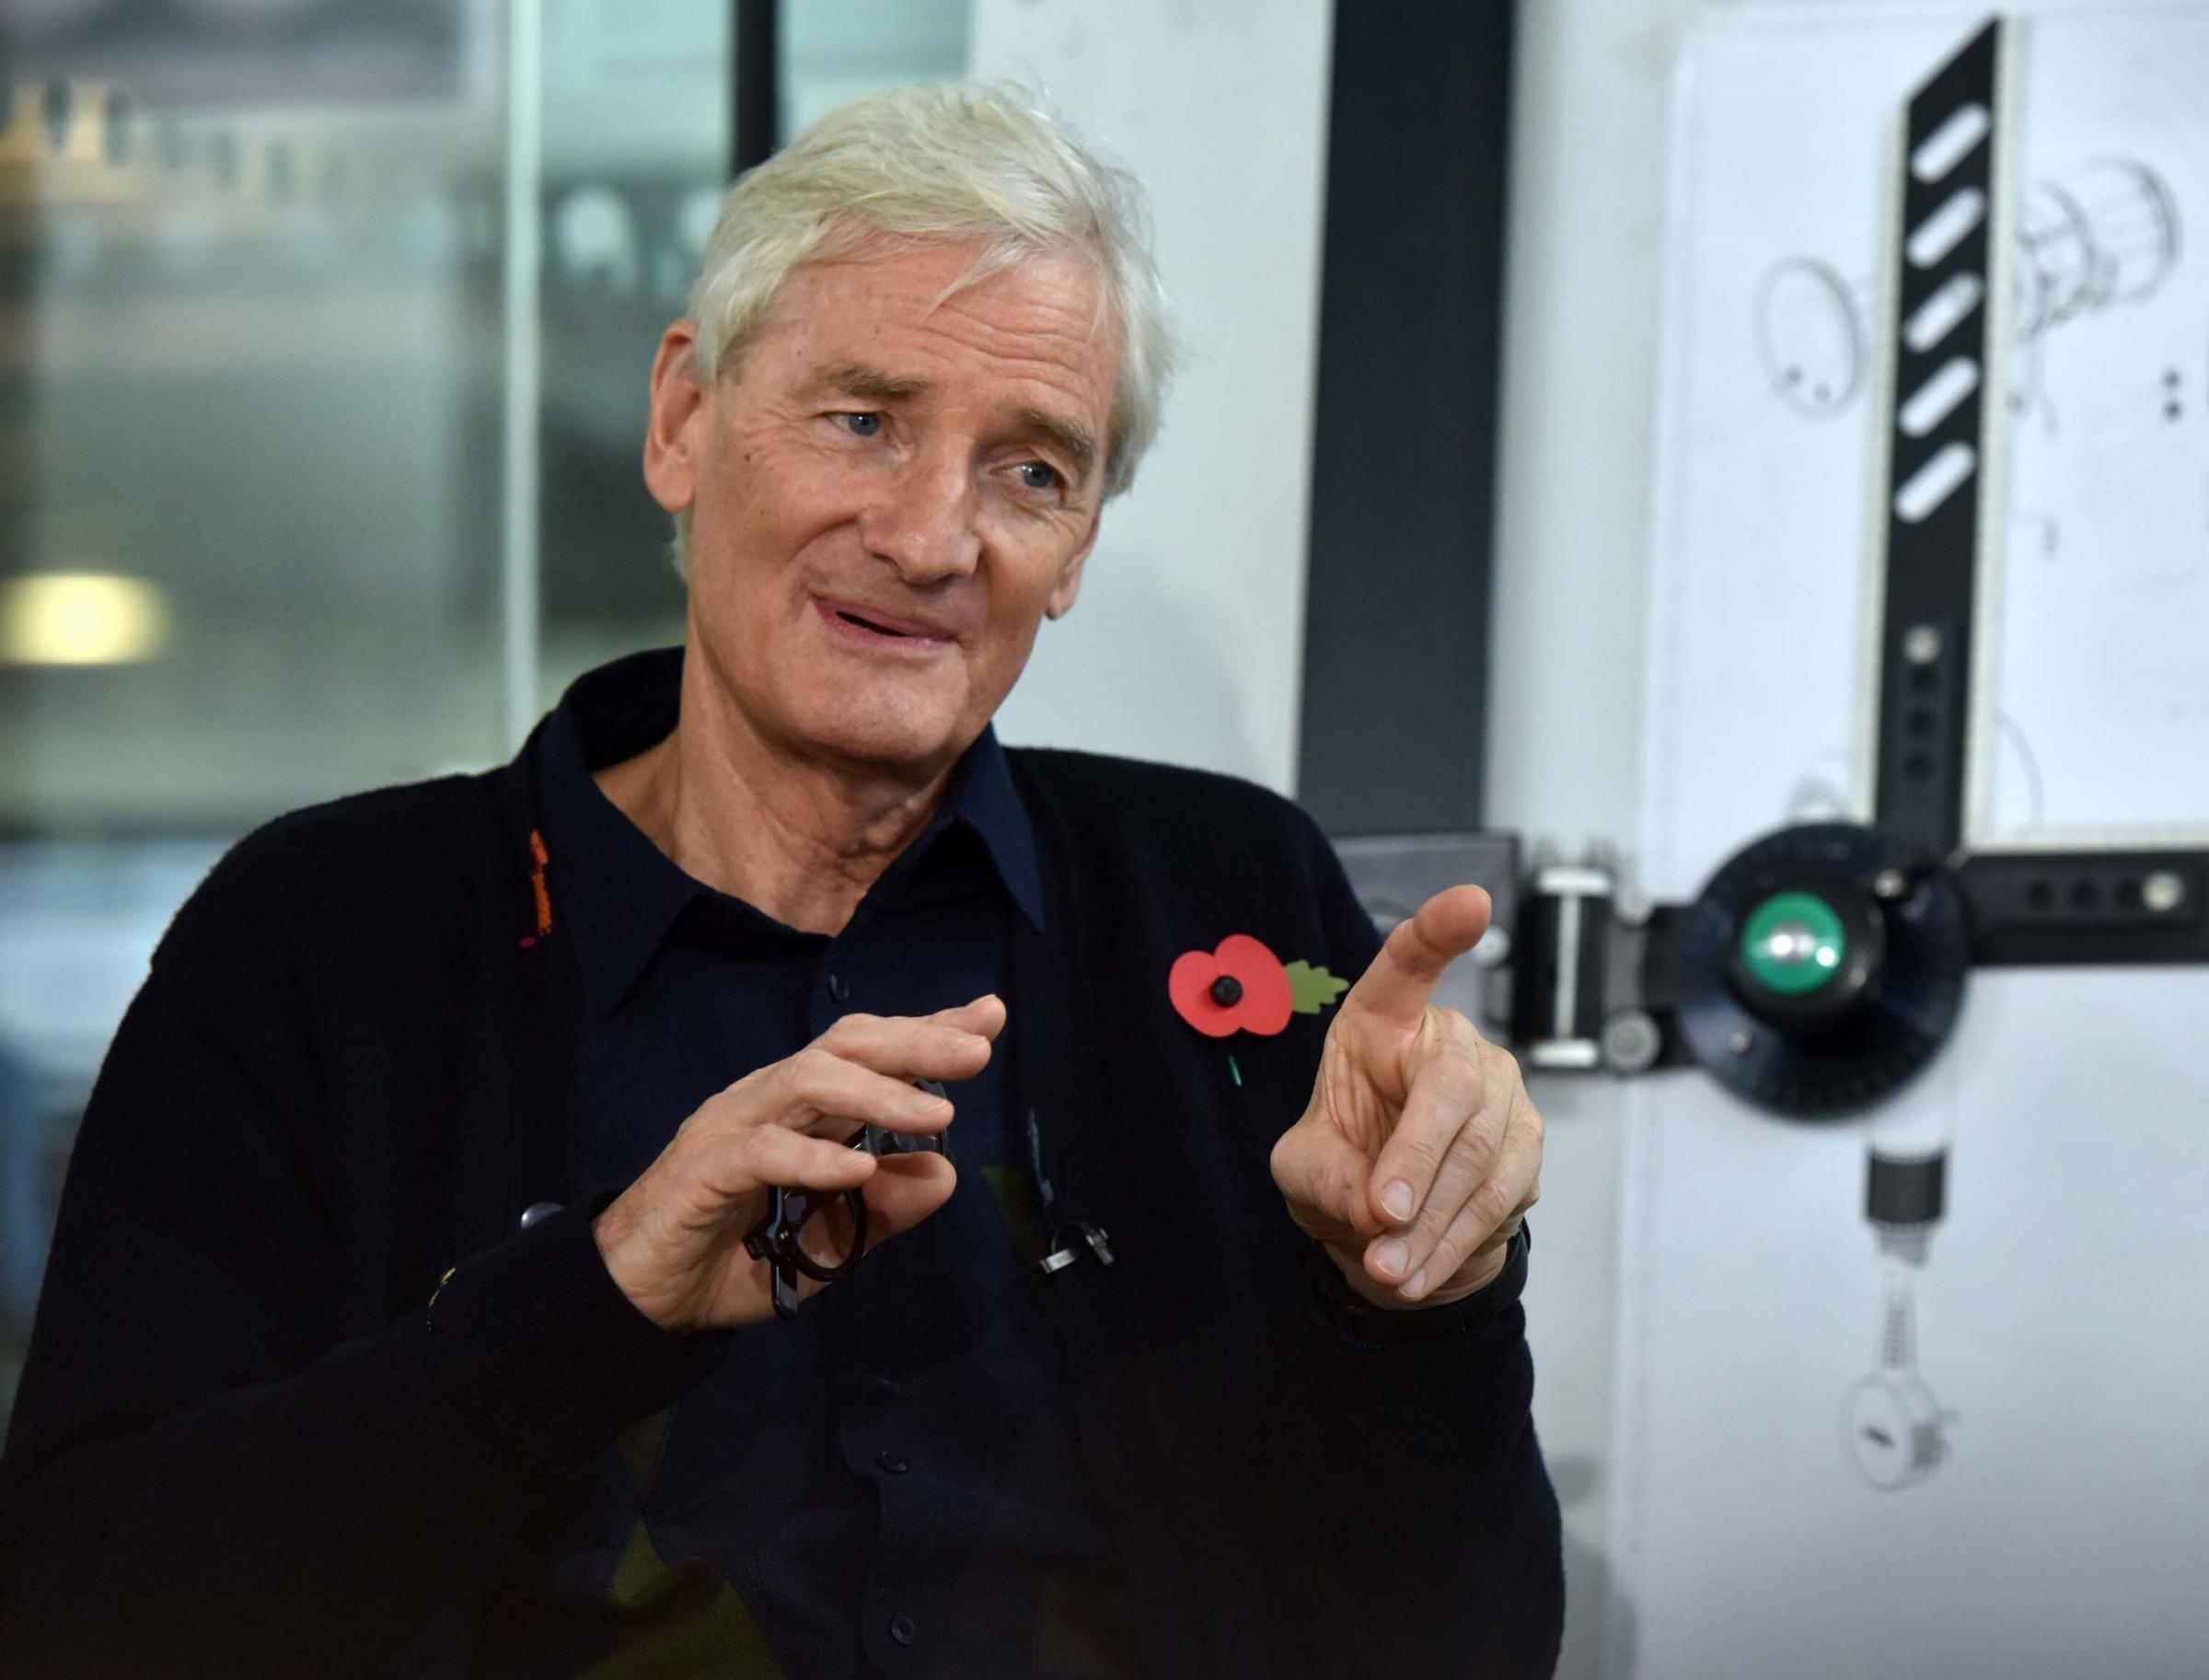 , Boris Johnson told Sir James Dyson he would 'fix' tax issue